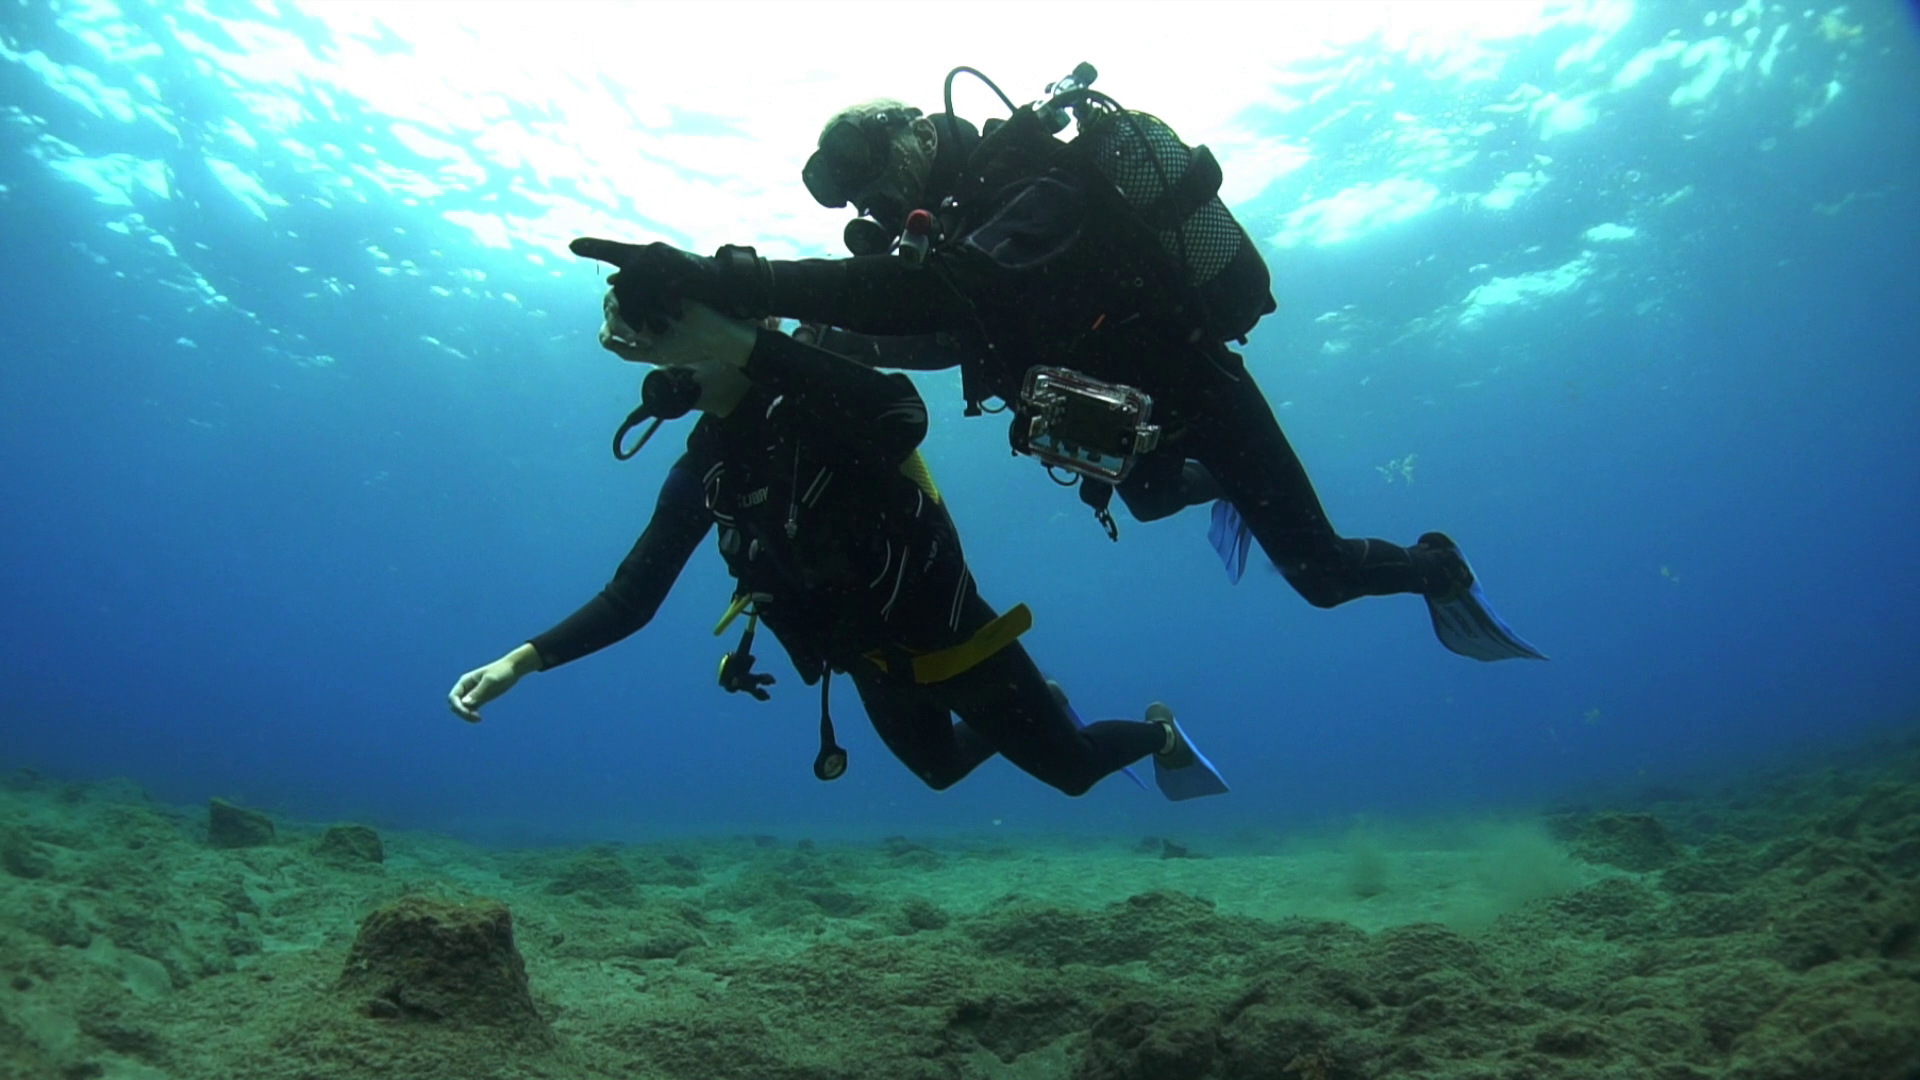 Initiation to scuba diving in the south of Tenerife